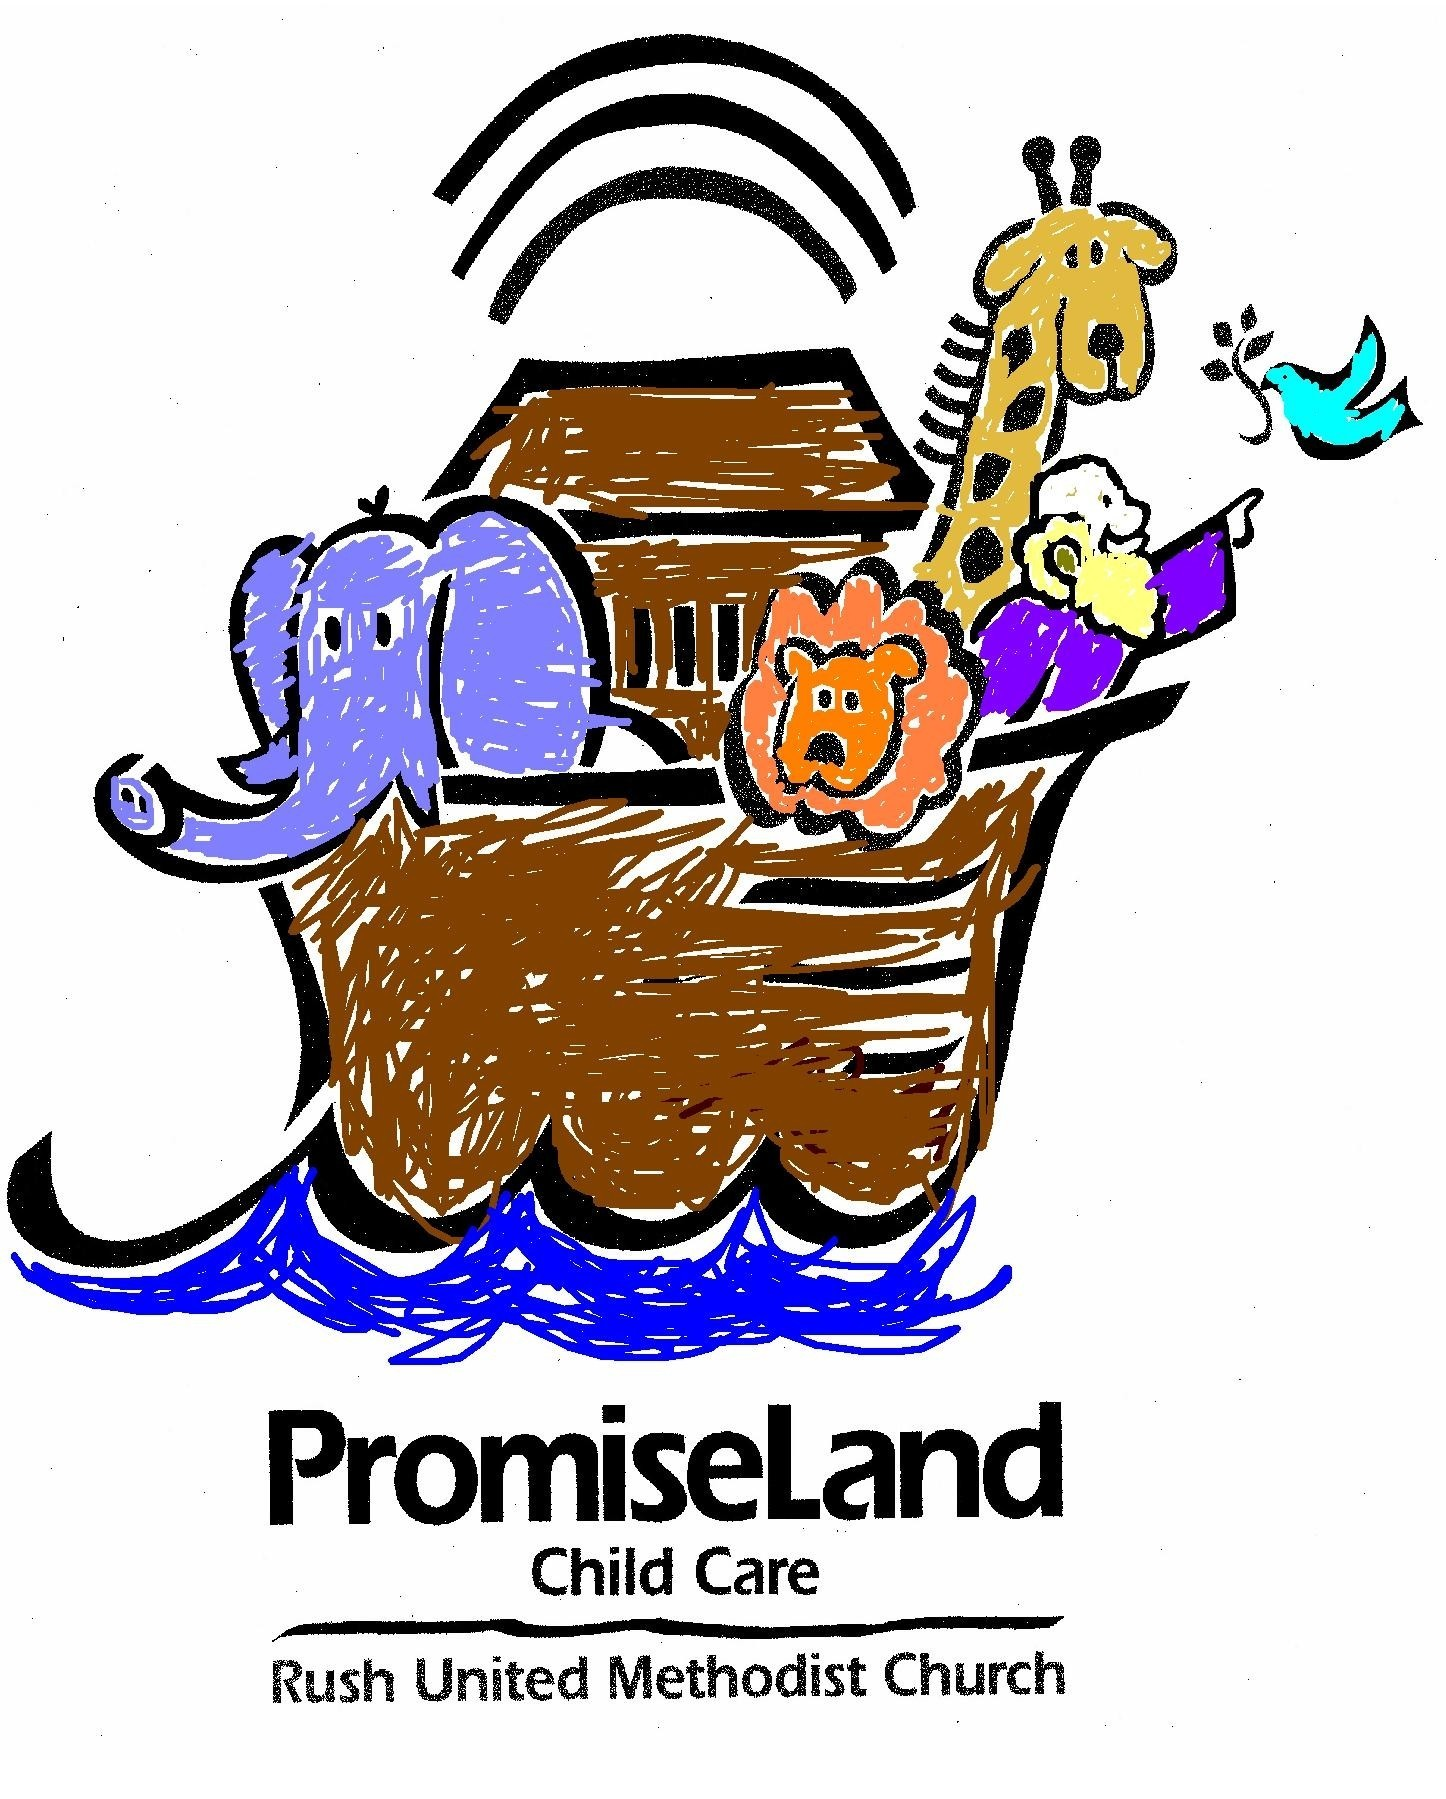 PromiseLand Child Care